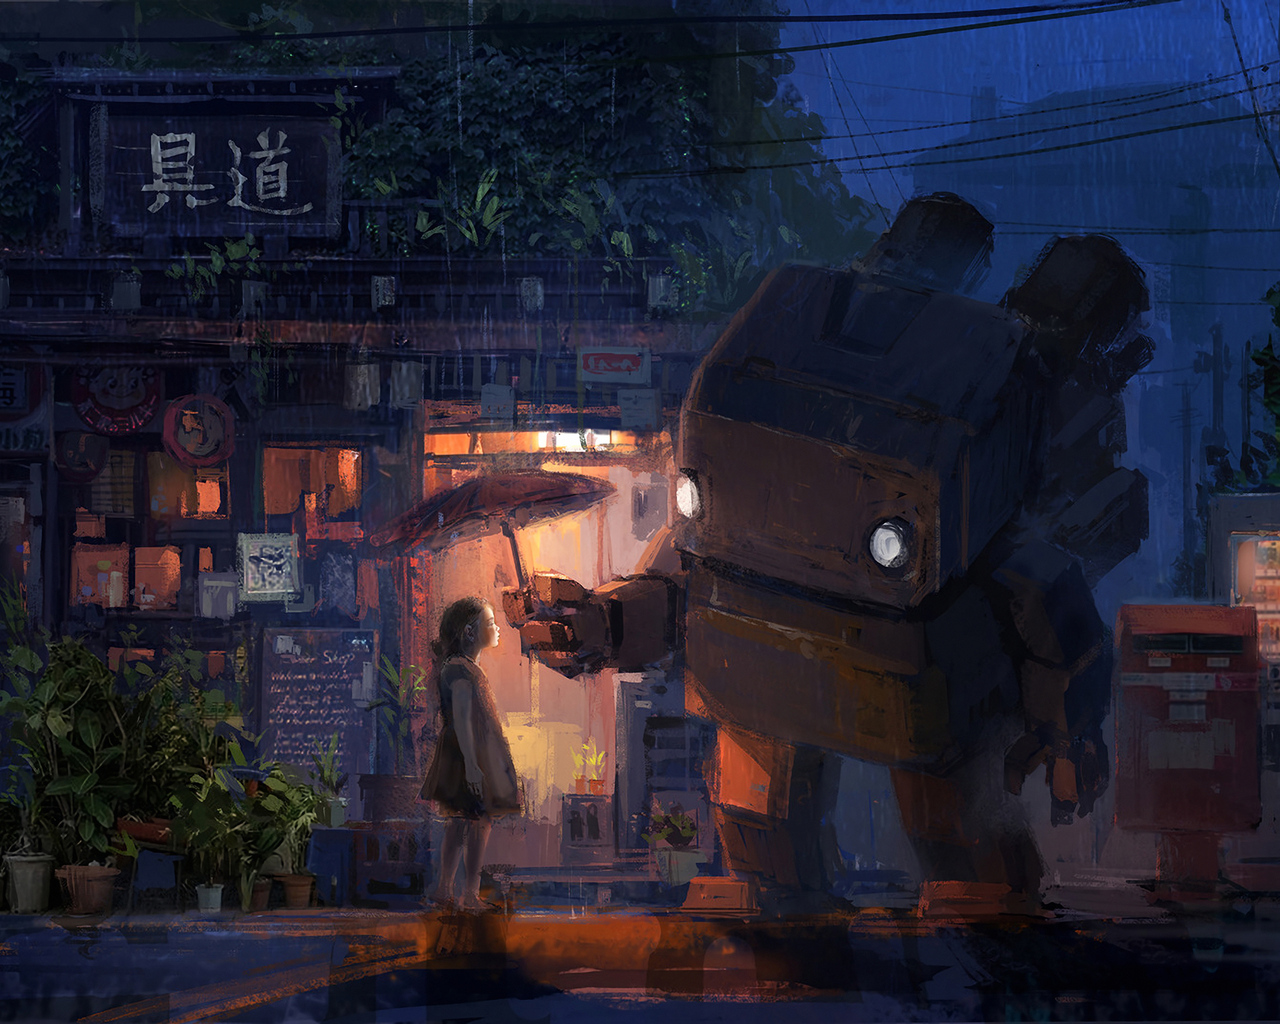 rainy-day-with-my-robot-friend-painting-4k-q1.jpg